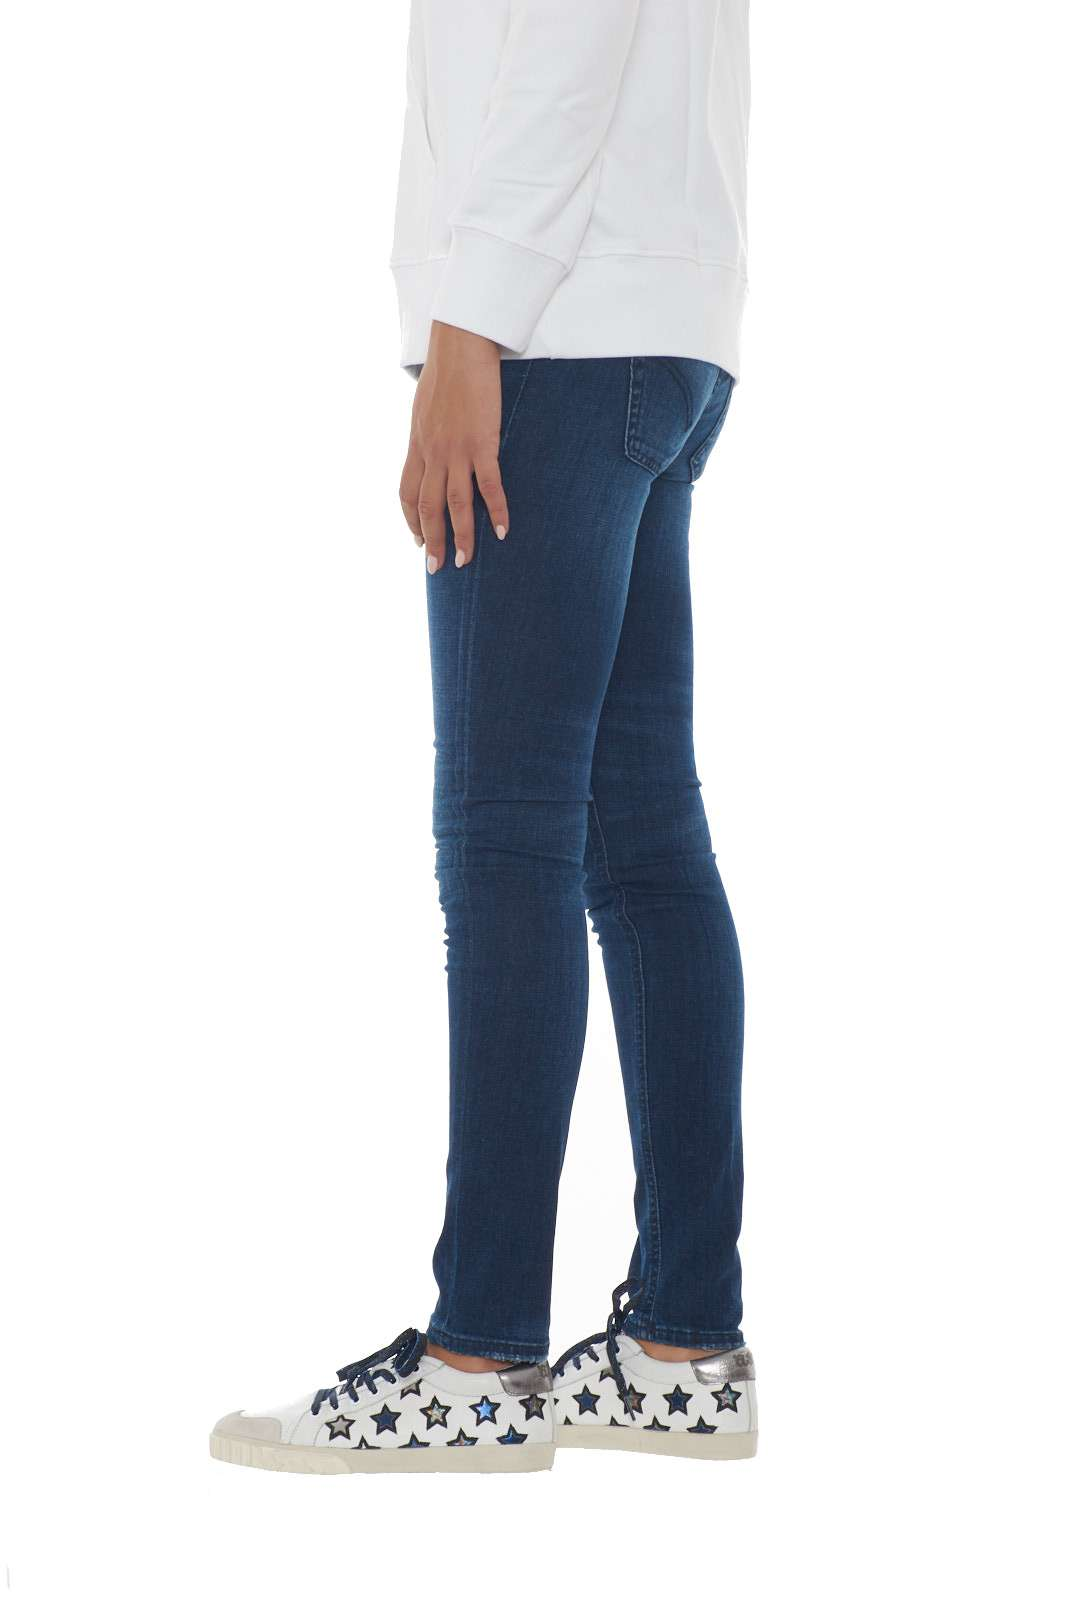 https://www.parmax.com/media/catalog/product/a/i/AI-outlet_parmax-denim-donna-Dondup-DP450%20DS0265D-B.jpg